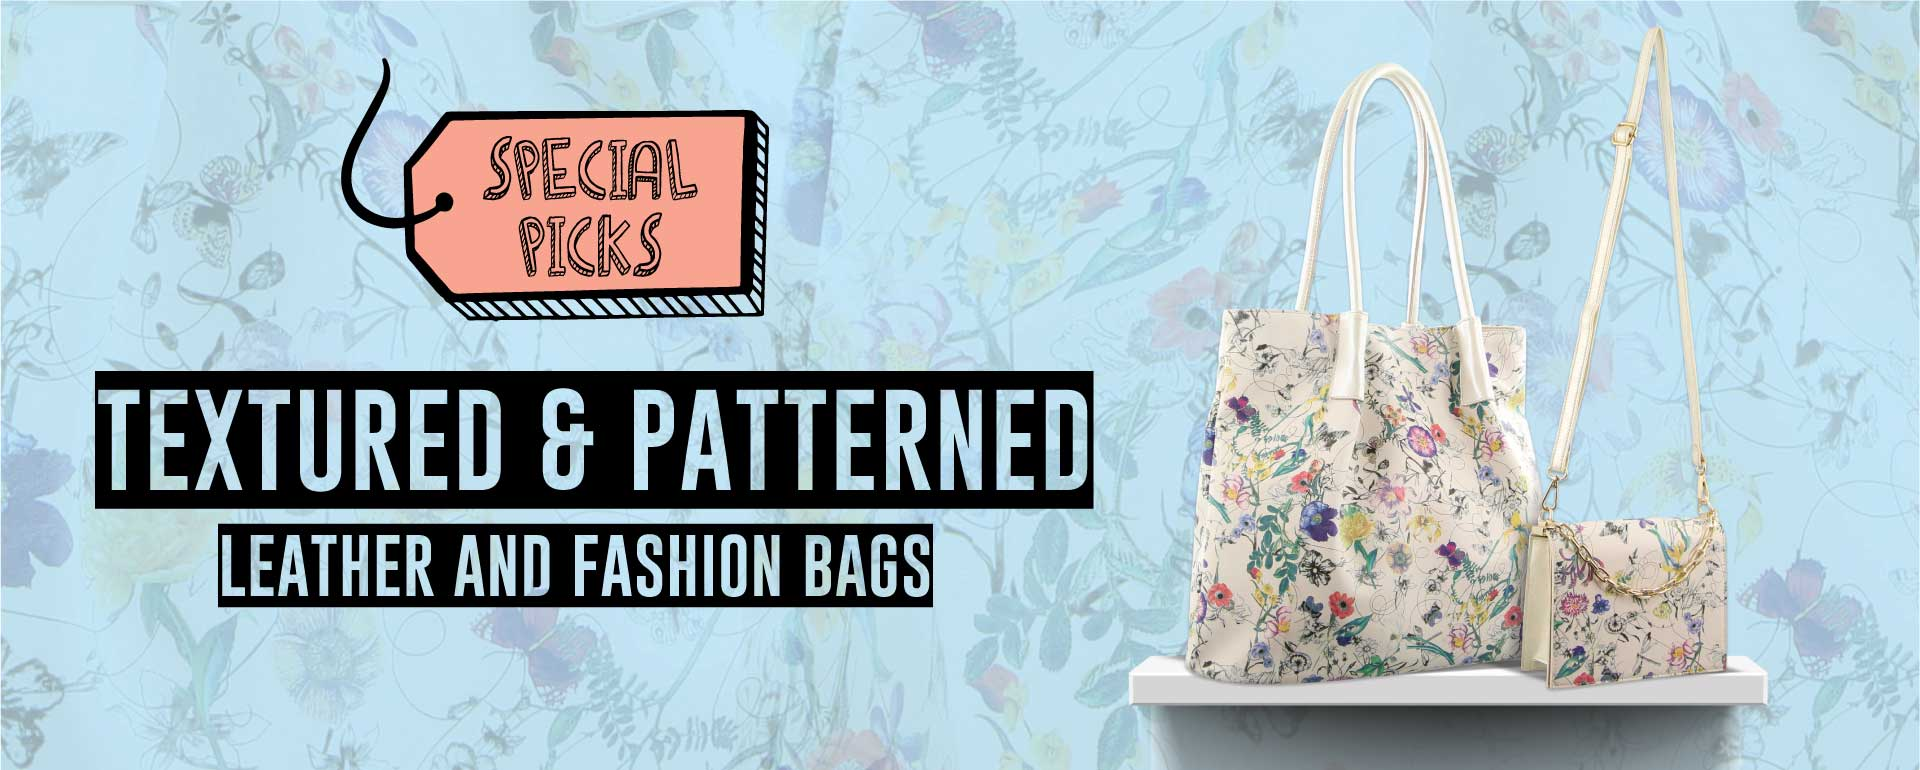 selected-textured-and-patterned-bags-banner1.jpg